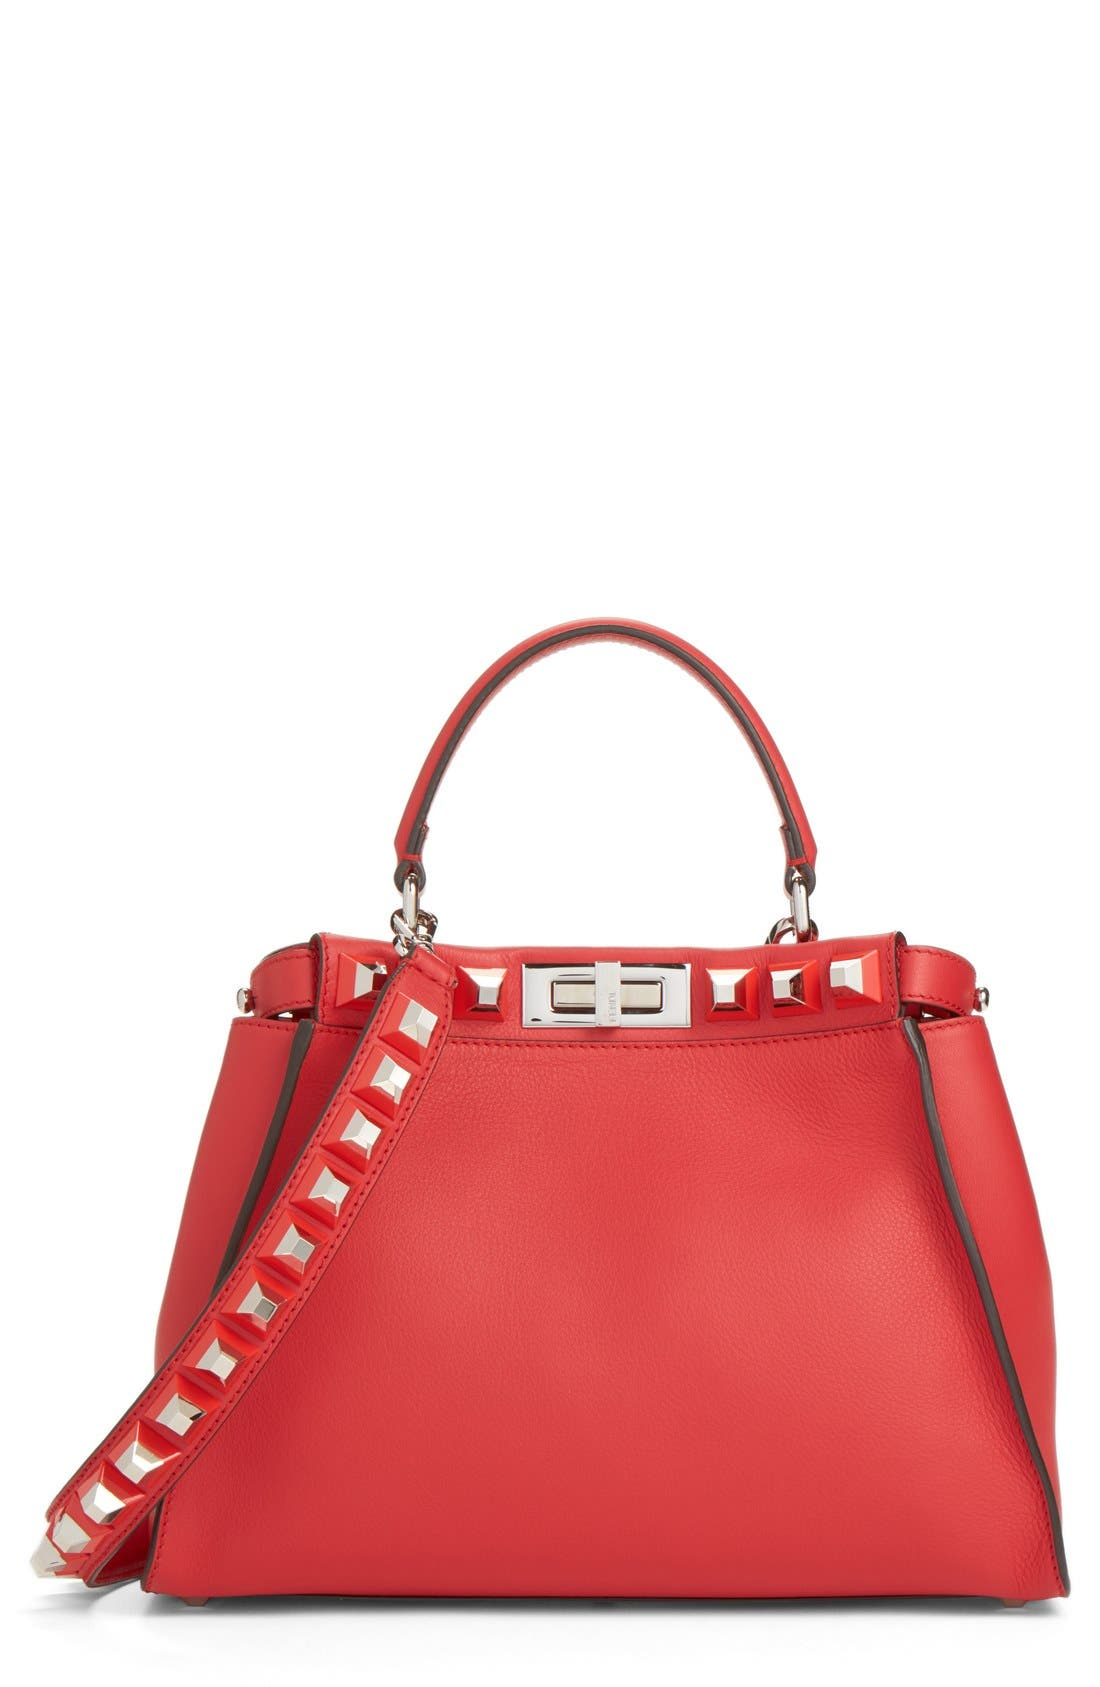 FENDI Medium Peekaboo Studded Calfskin Leather Satchel